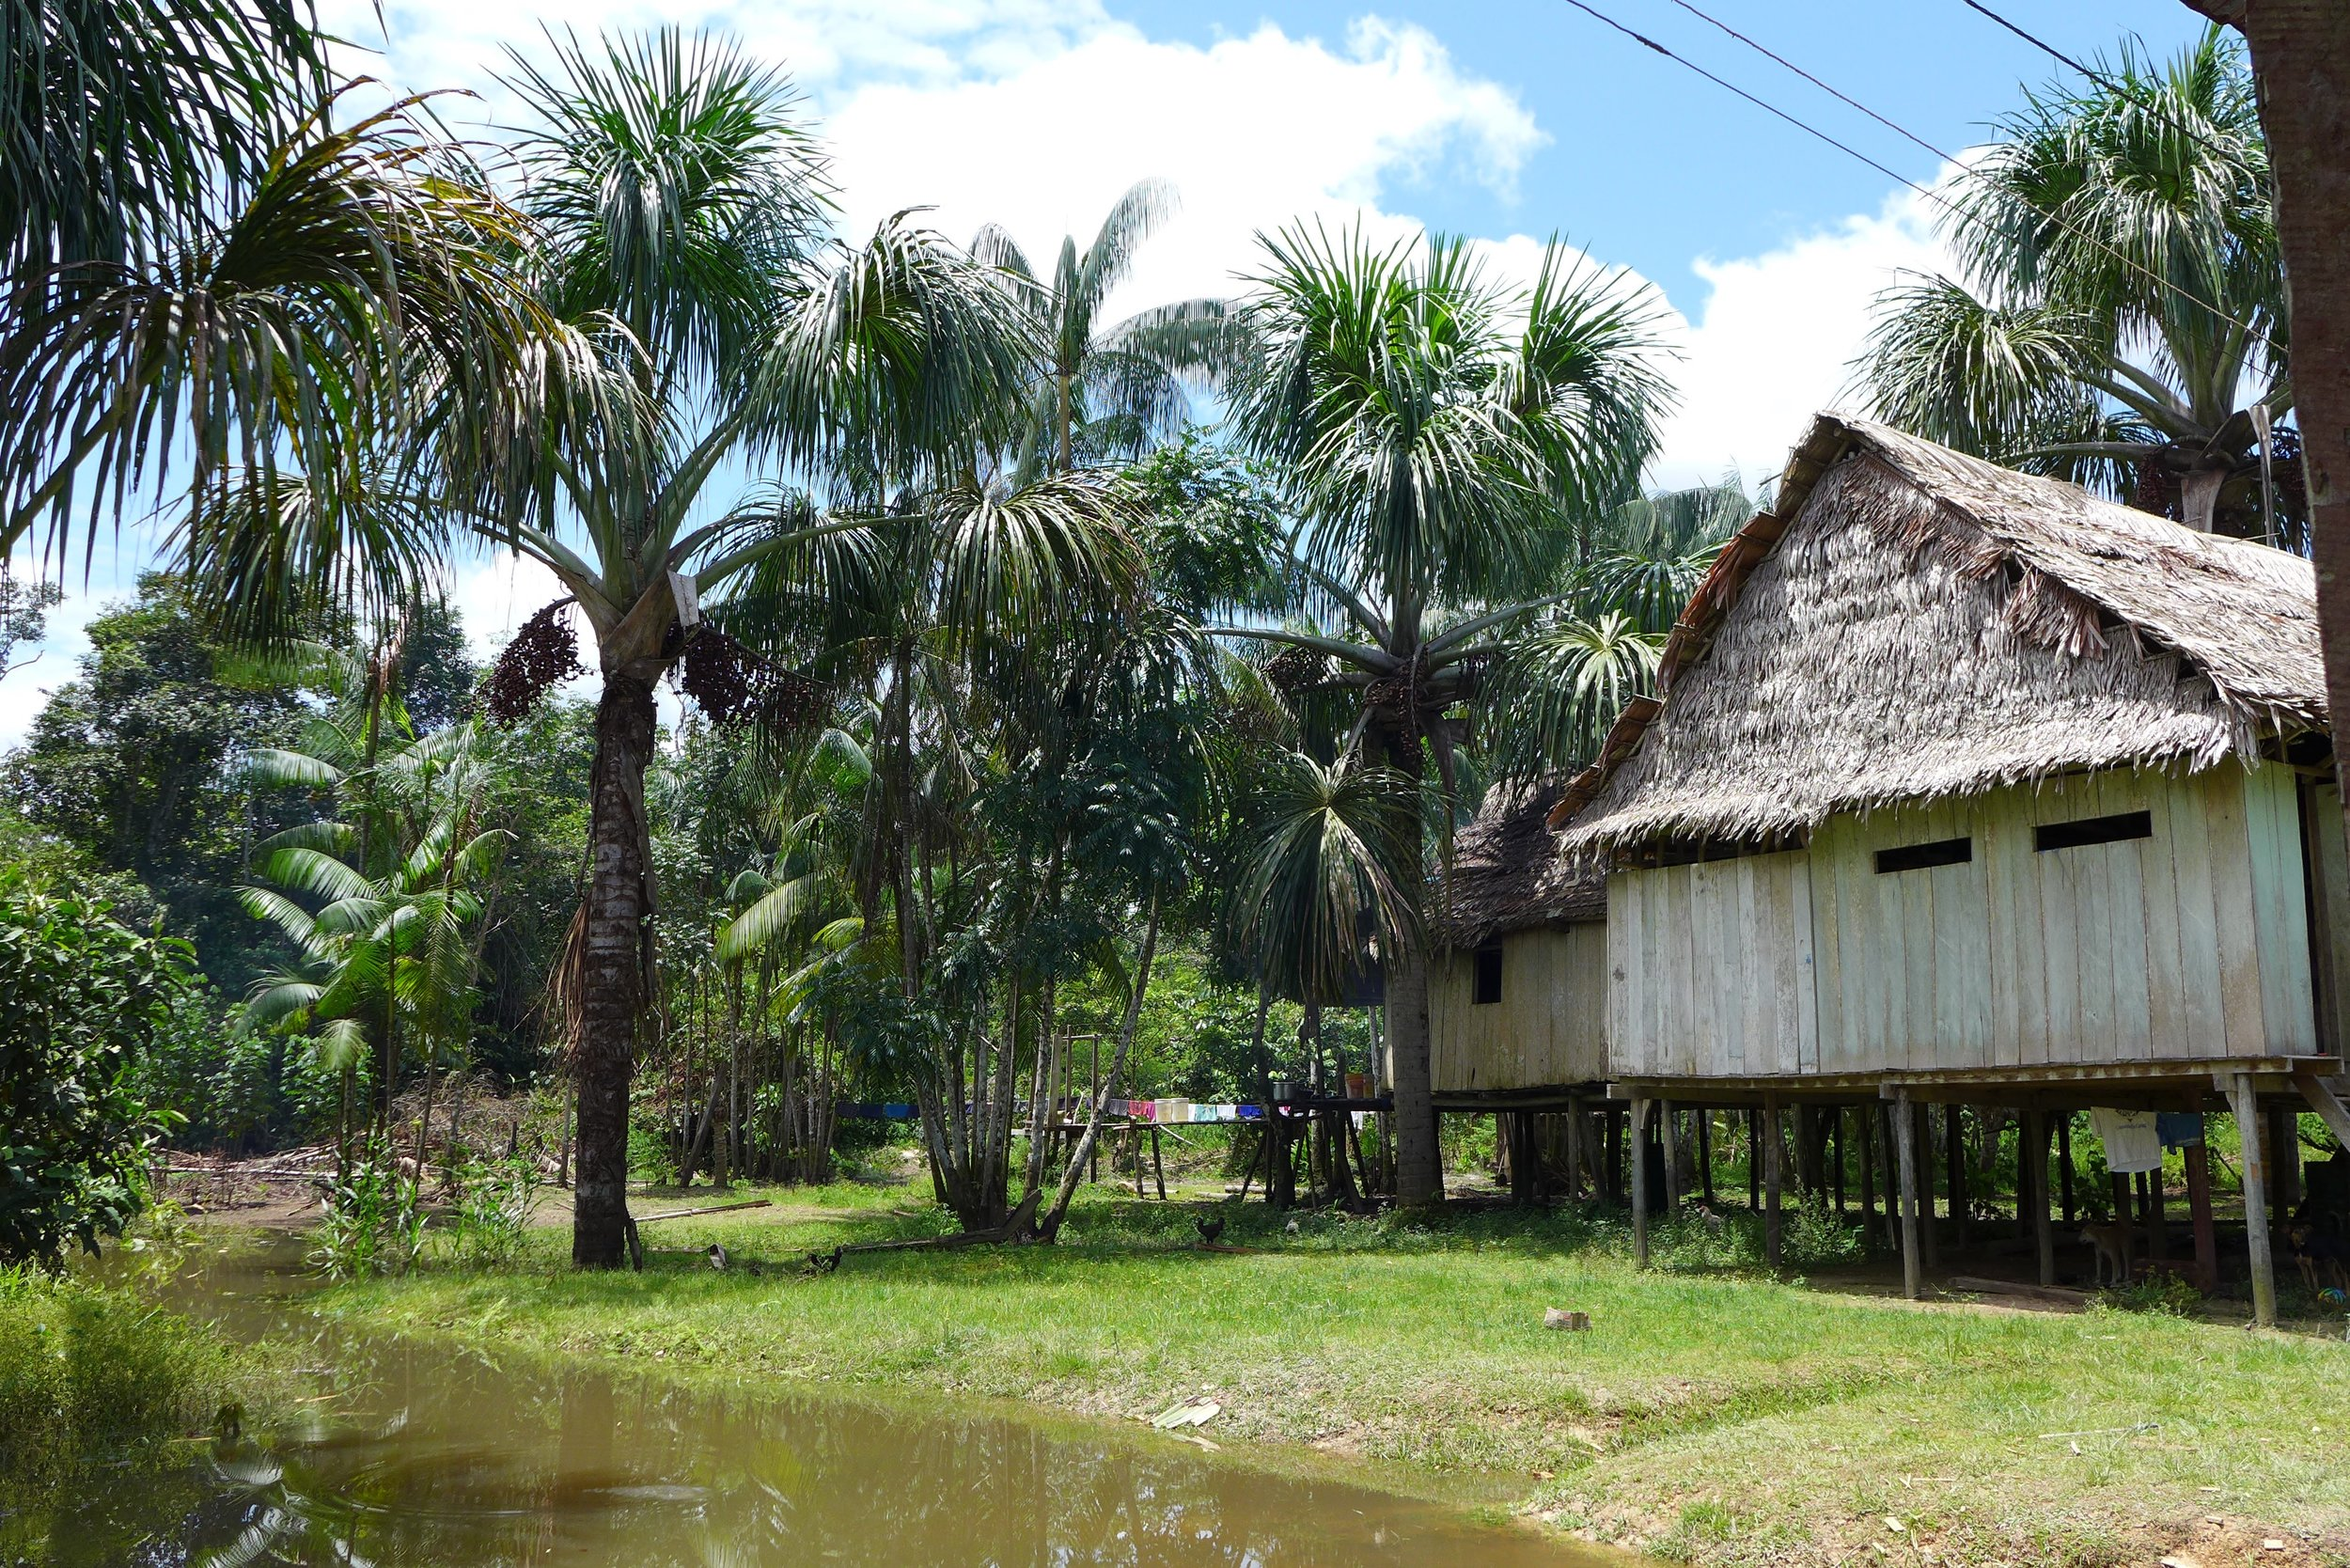 Aguaje and açaí palms are a common sight in home gardens in Amazonian communities.